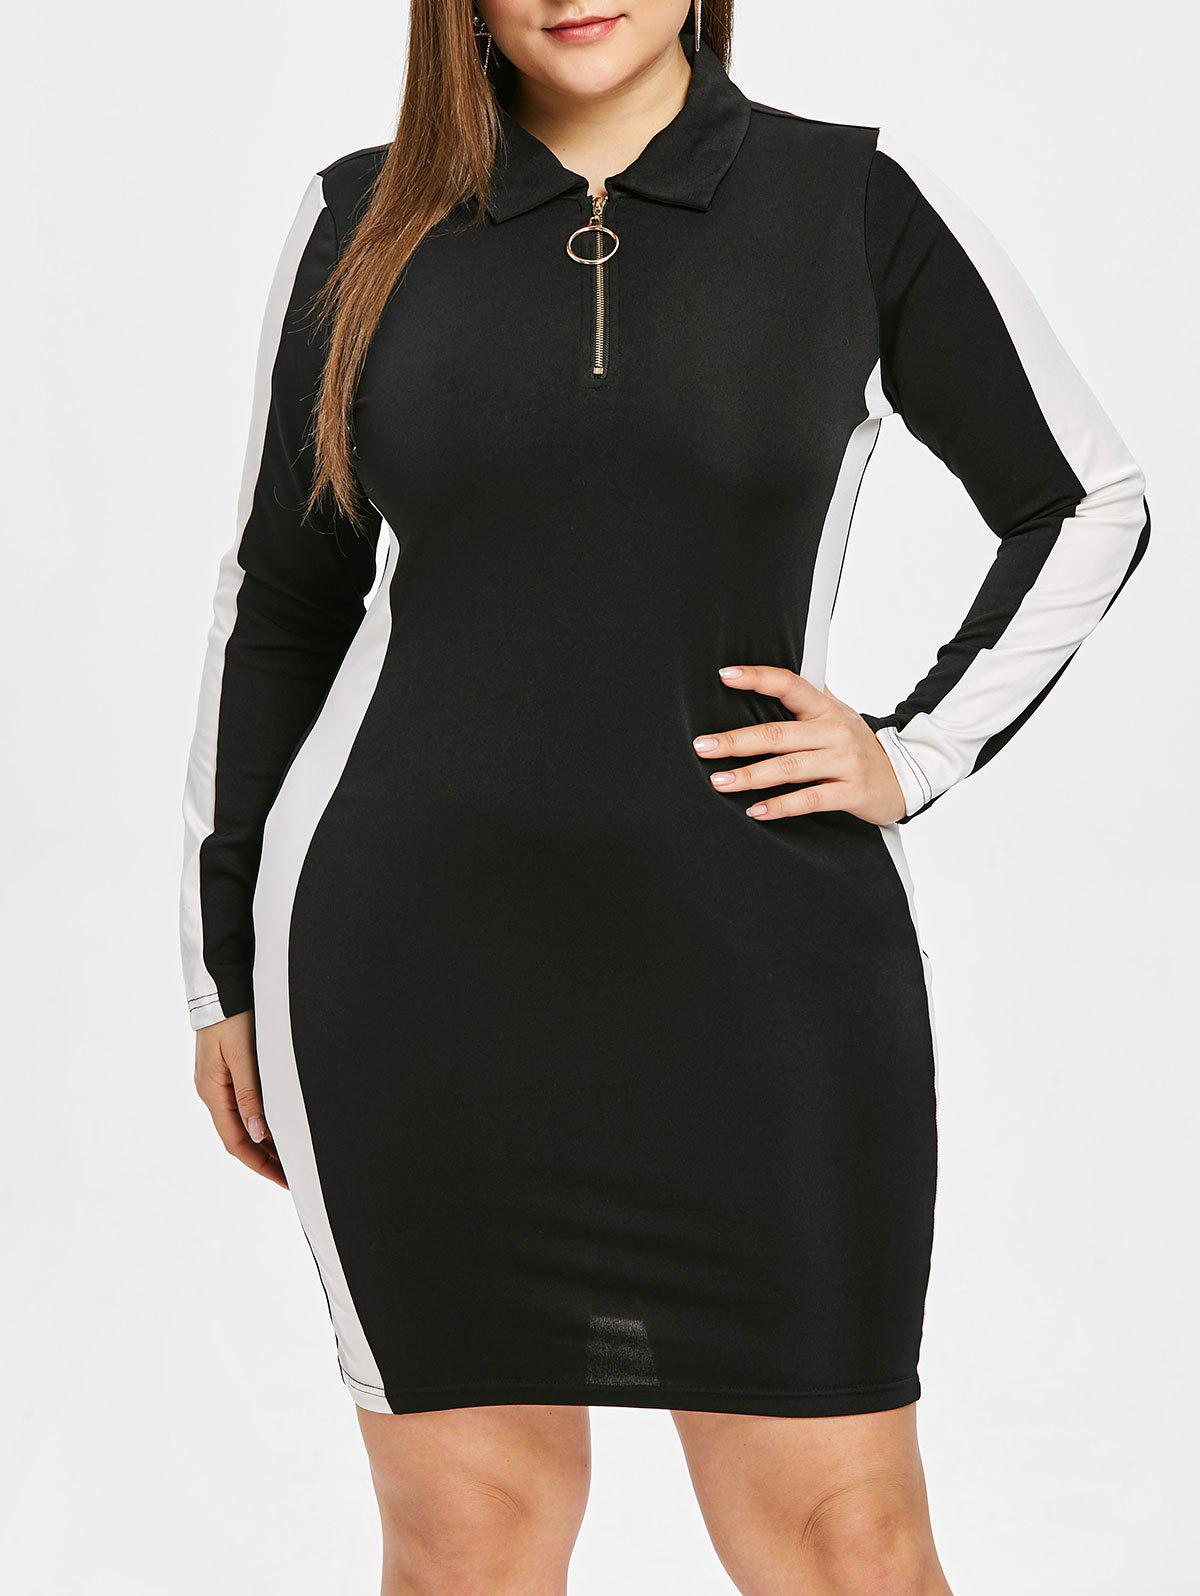 O Ring Zip Plus Size Bodycon Dress